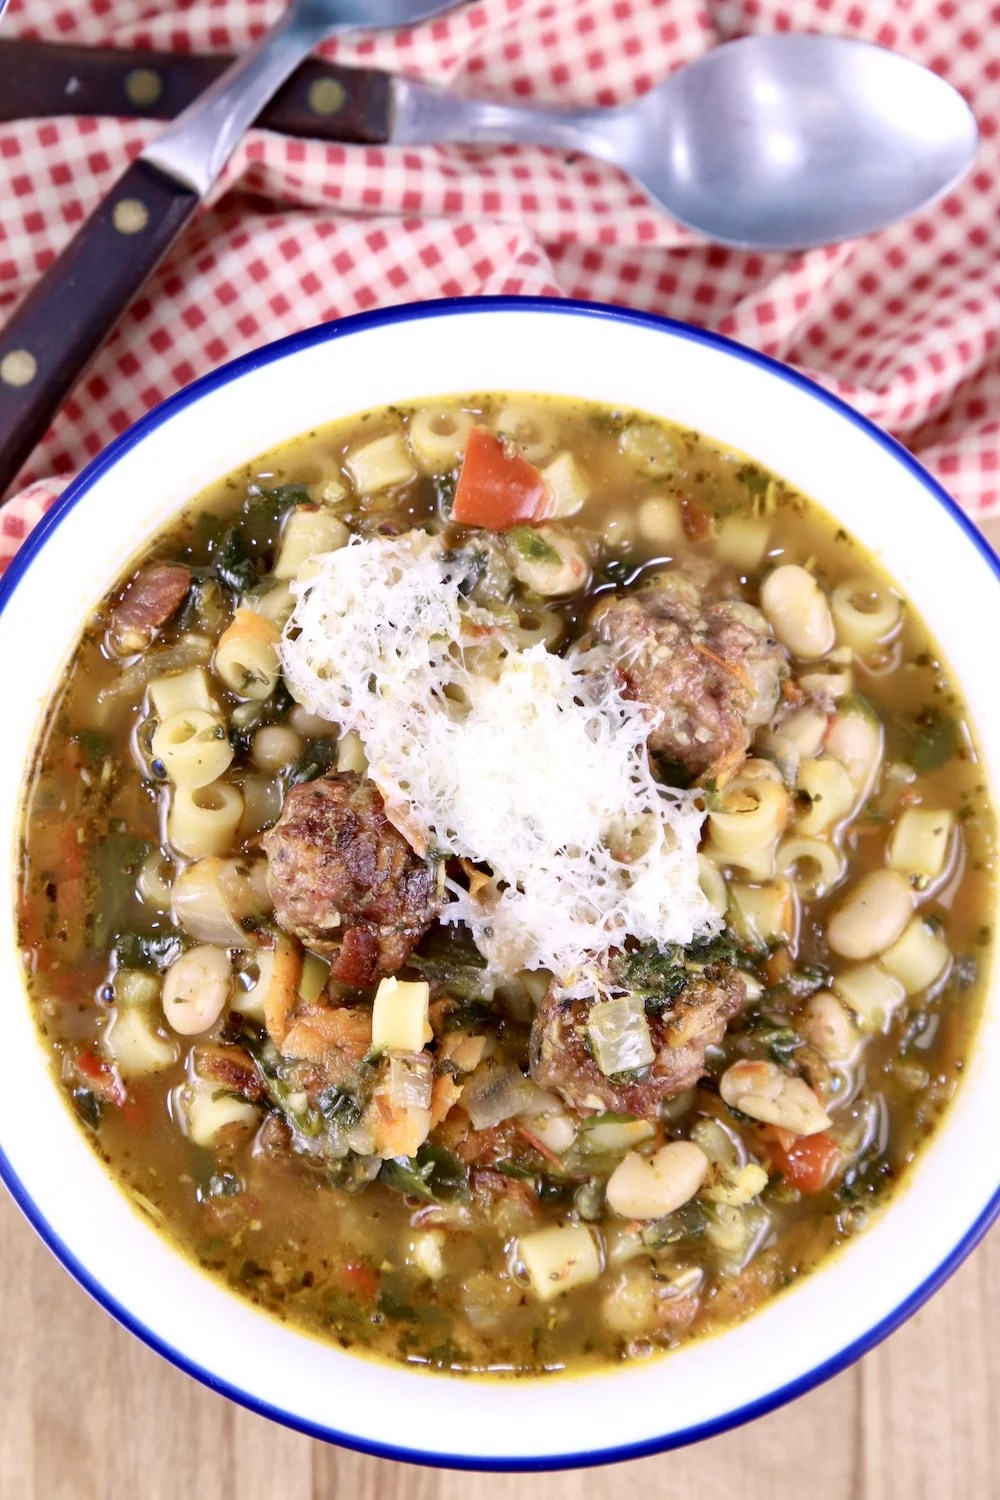 Meatball Soup with parmesan cheese grated over the top, spoons, red check napkin